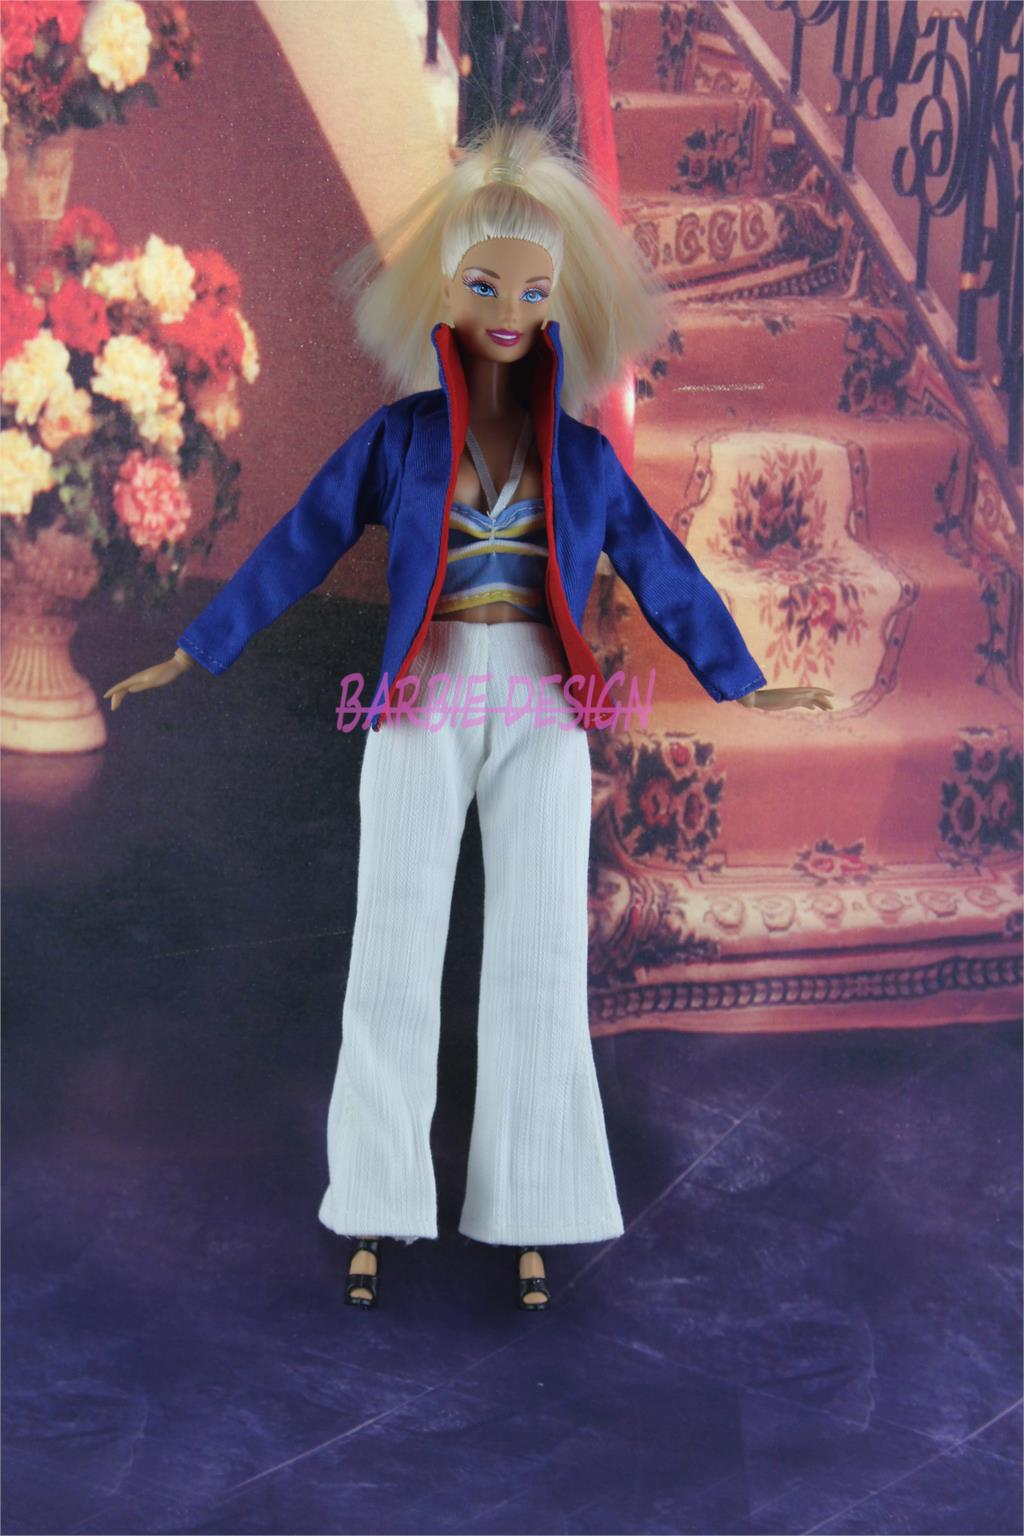 3in1 Fashion Lady Outfit Suit Jacket + Tops With Riband + White Trousers Clothes Blouse Pants For Barbie Doll 11.5″ 12″ Puppet